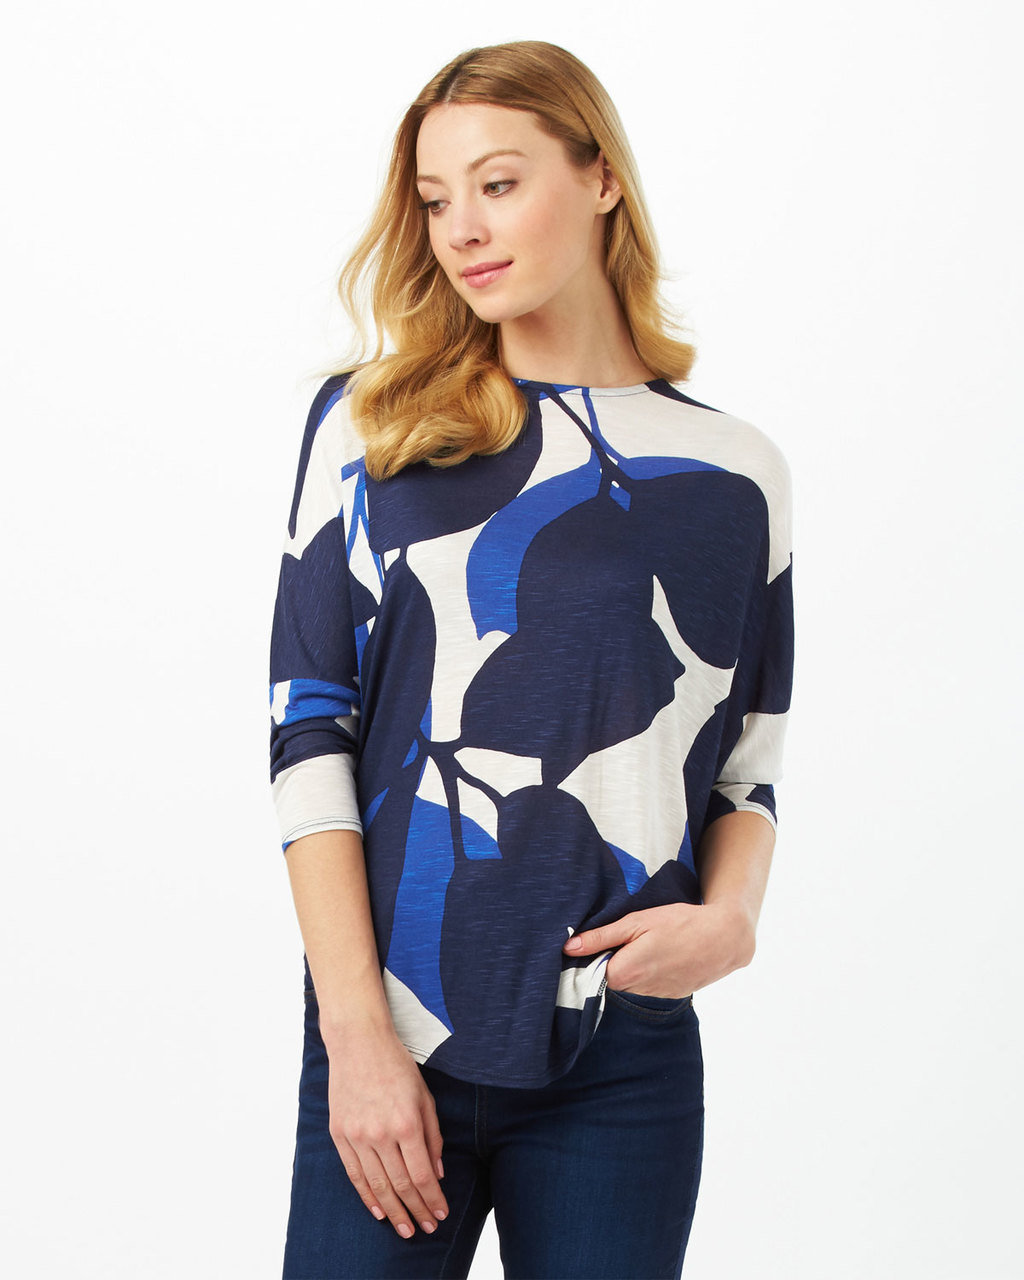 Esme Slub Top - neckline: round neck; secondary colour: ivory/cream; predominant colour: navy; occasions: casual, creative work; length: standard; style: top; fibres: viscose/rayon - 100%; fit: body skimming; sleeve length: 3/4 length; sleeve style: standard; pattern type: fabric; pattern: patterned/print; texture group: jersey - stretchy/drapey; pattern size: big & busy (top); multicoloured: multicoloured; season: s/s 2016; wardrobe: highlight